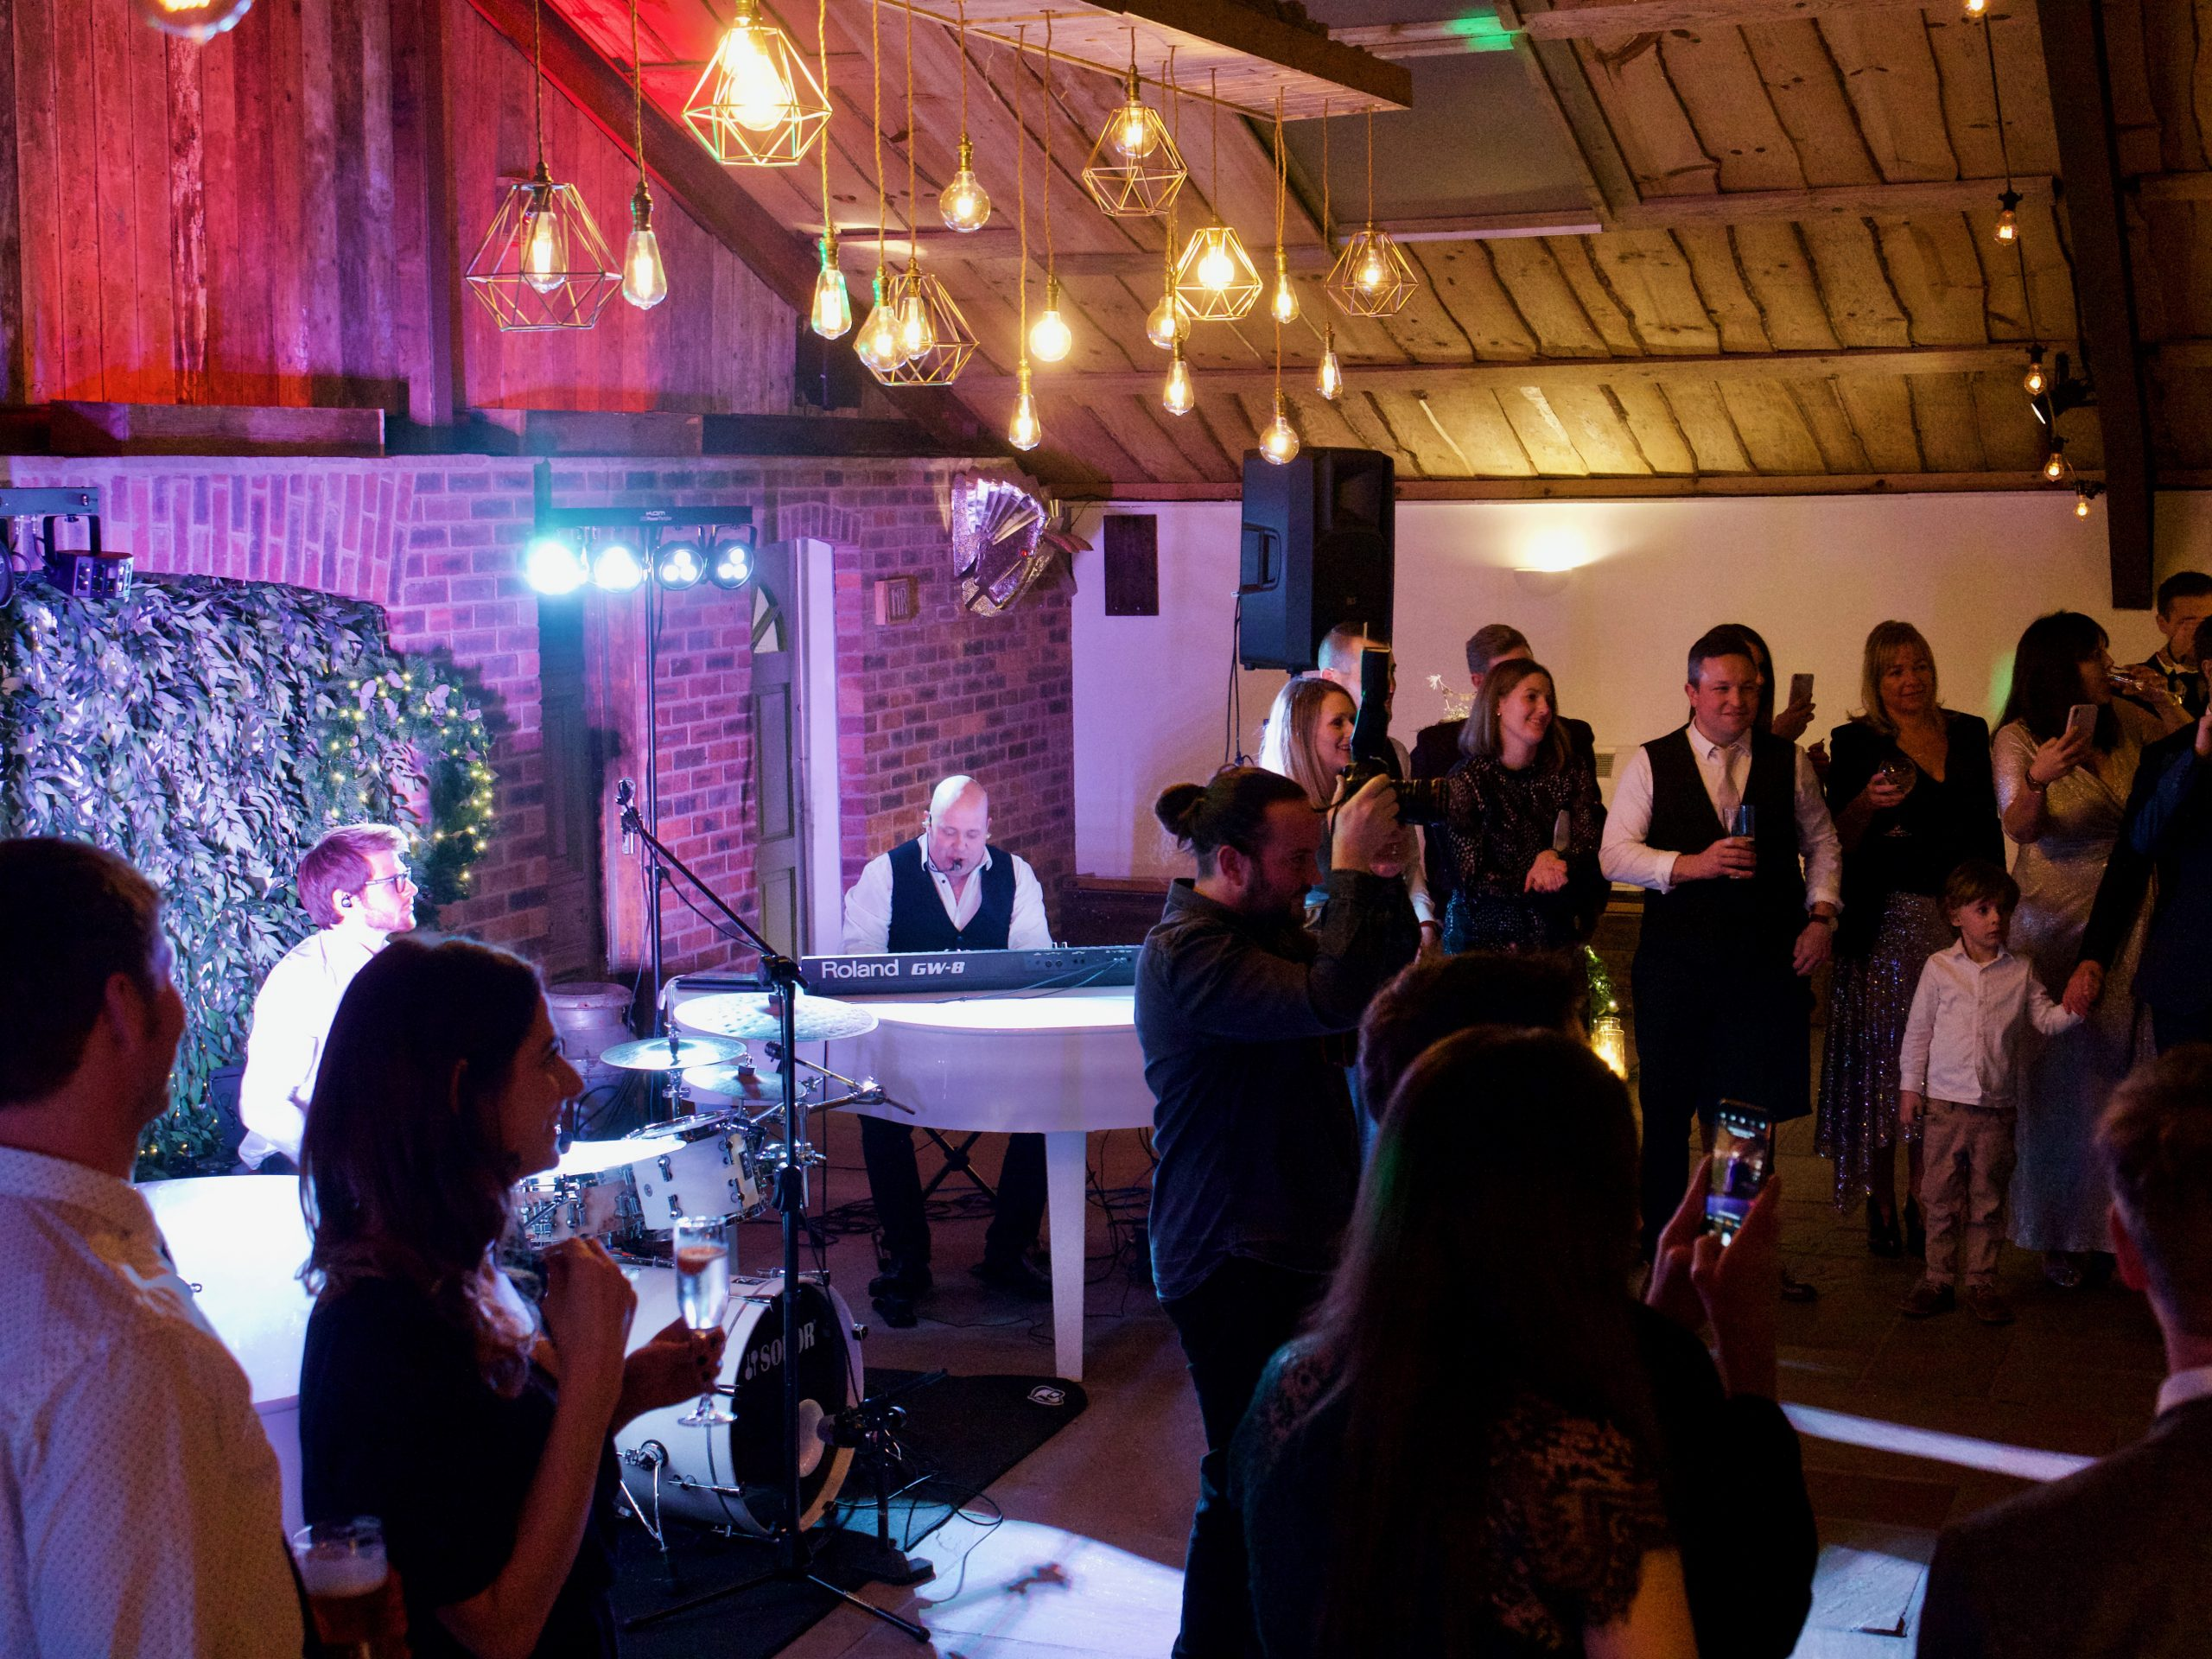 Owen House Barn with wedding music from PianoJam XL